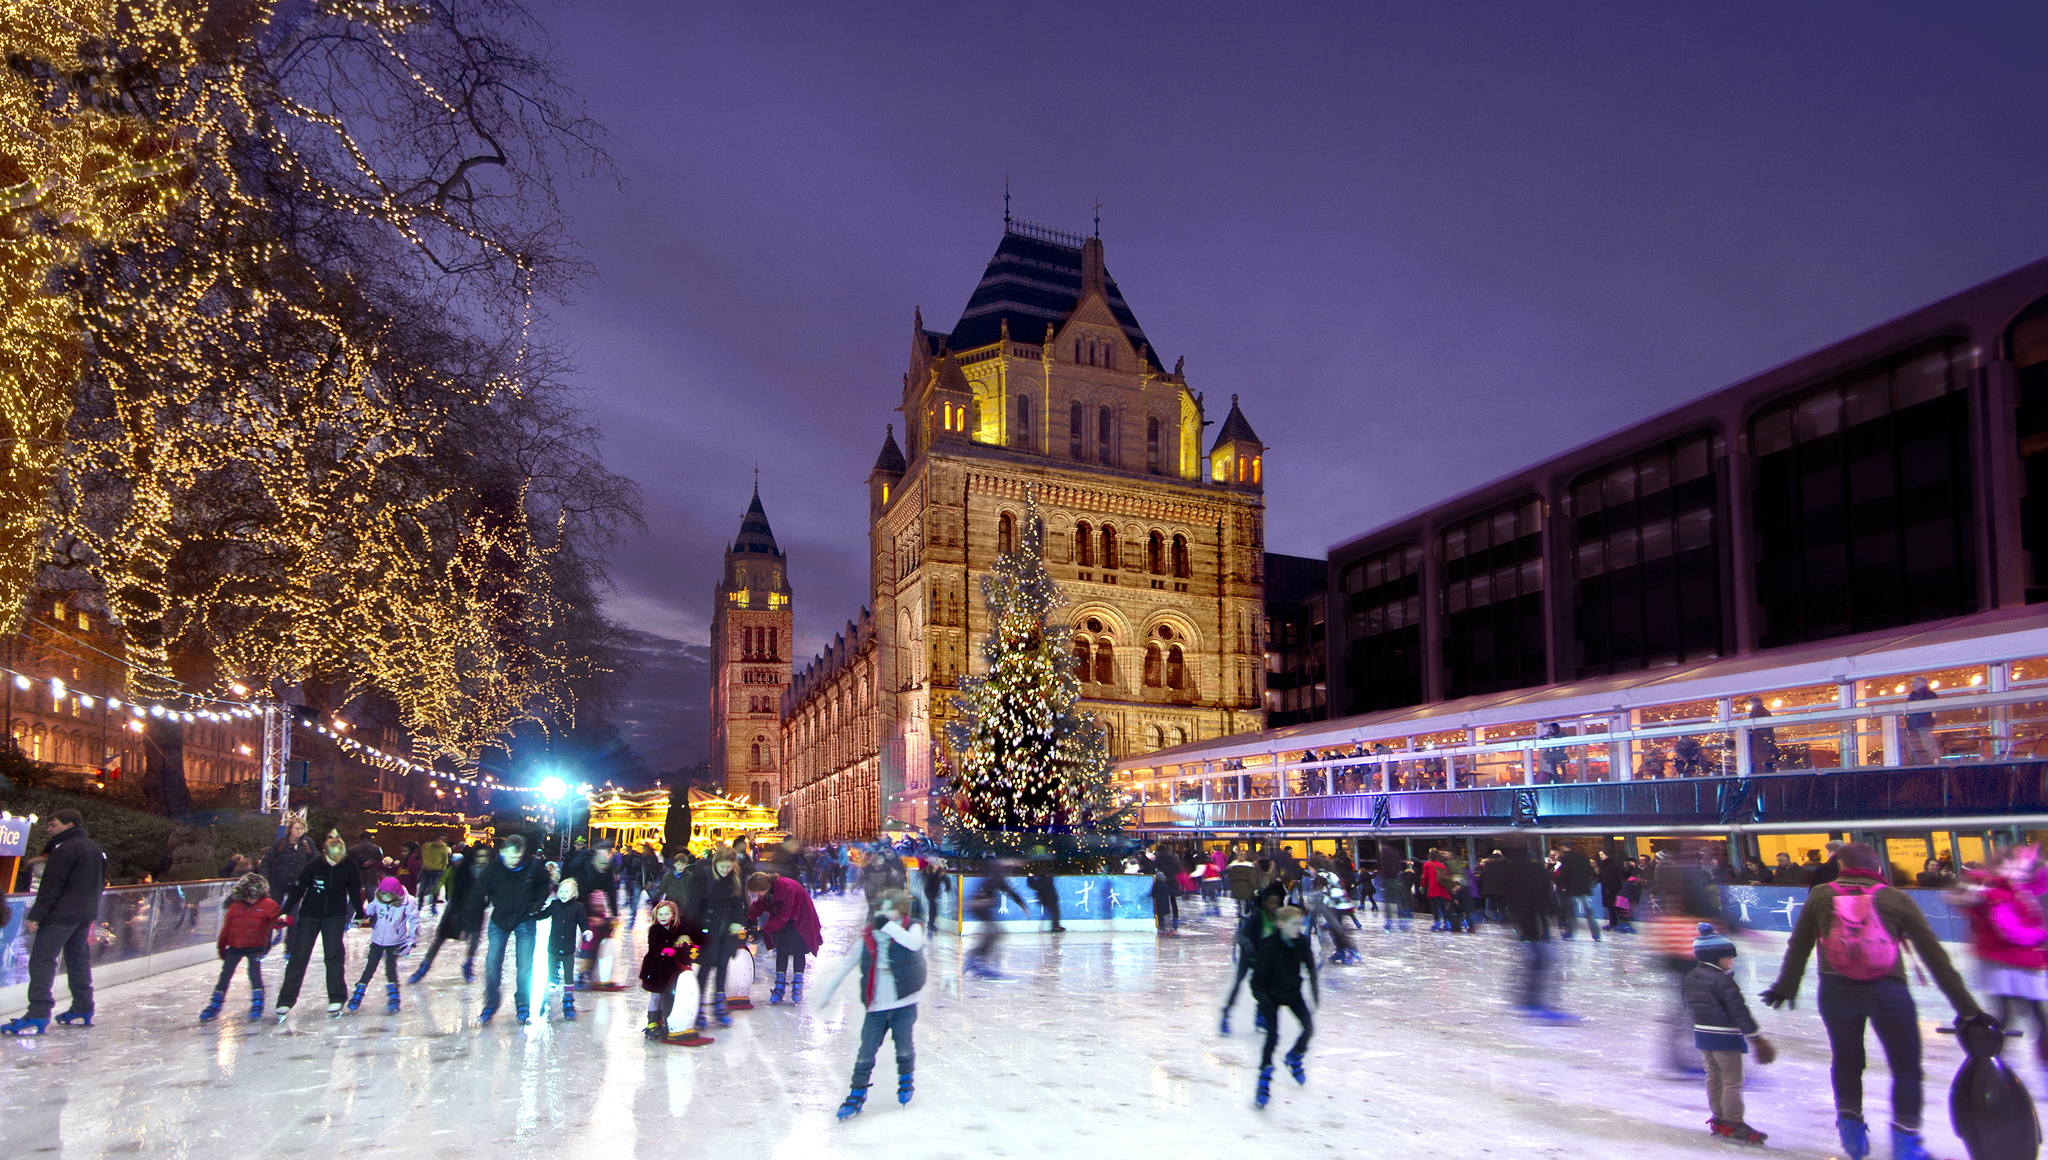 London At Christmas Time.Southbank Centre Winter Festival 2019 Guide Christmas In